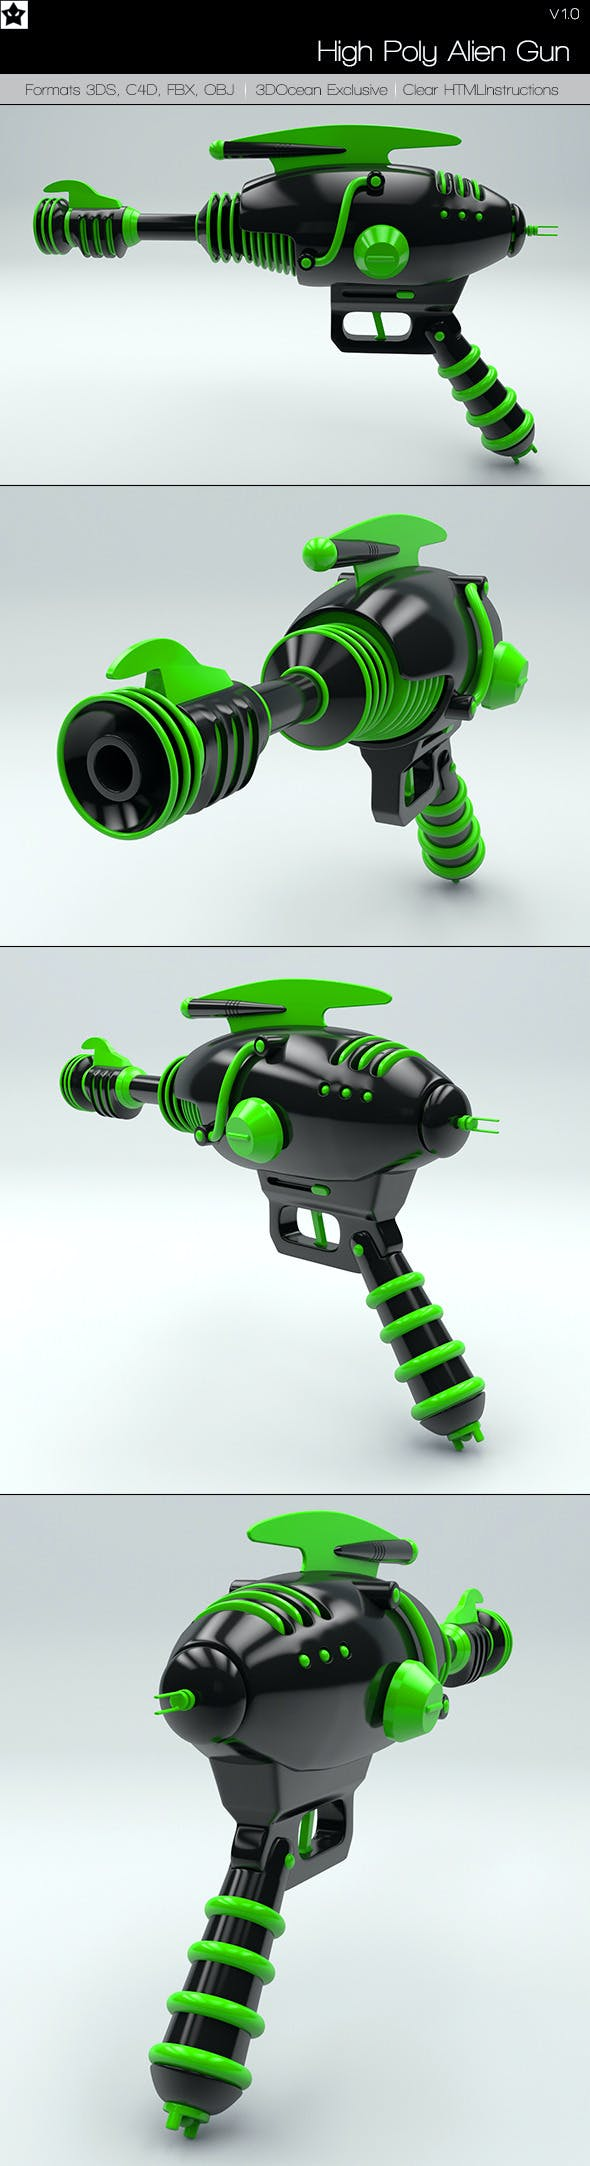 High Poly Alien Gun - 3DOcean Item for Sale